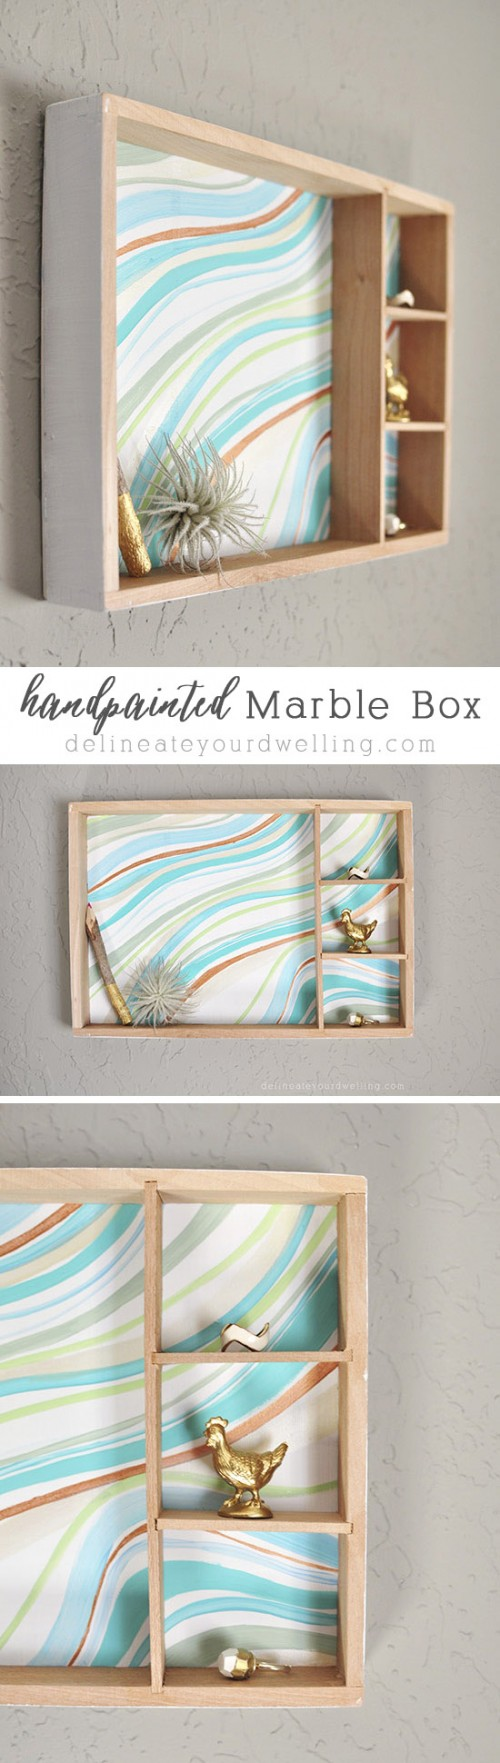 marble wall box (via delineateyourdwelling)